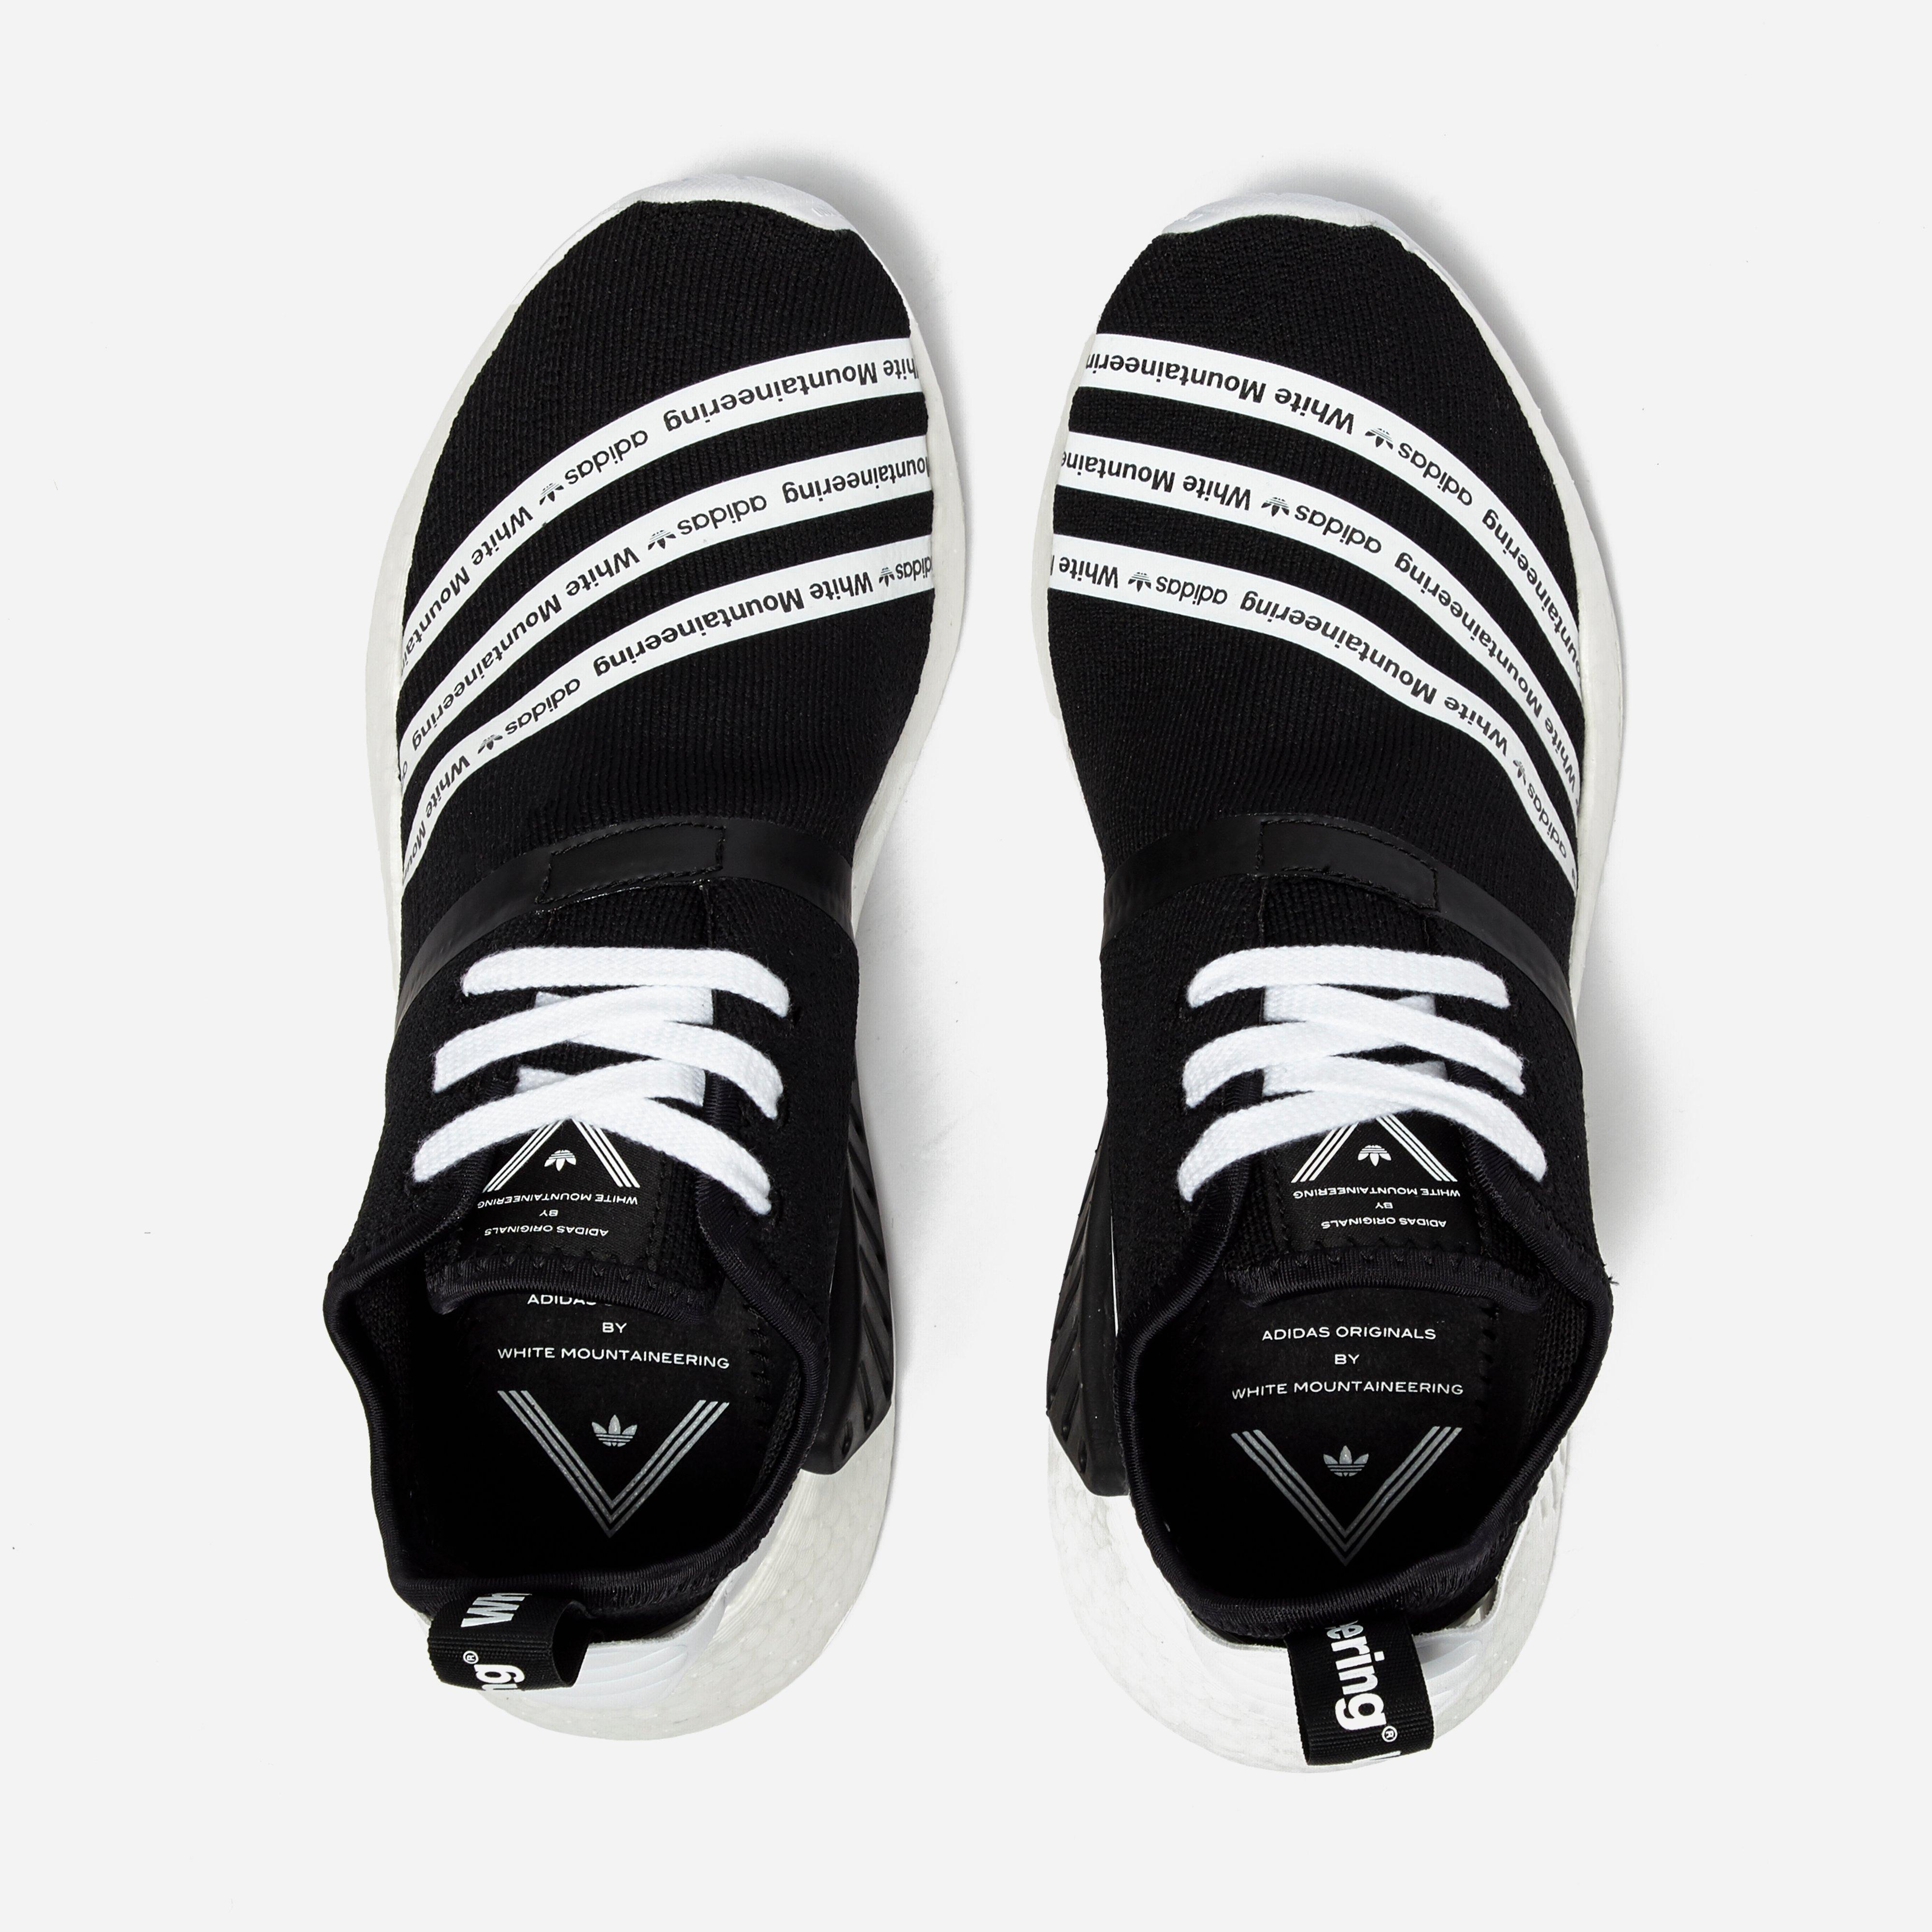 b09cf40d43c68 Lyst - adidas Originals X White Mountaineering Nmd R2 Pk in Black ...